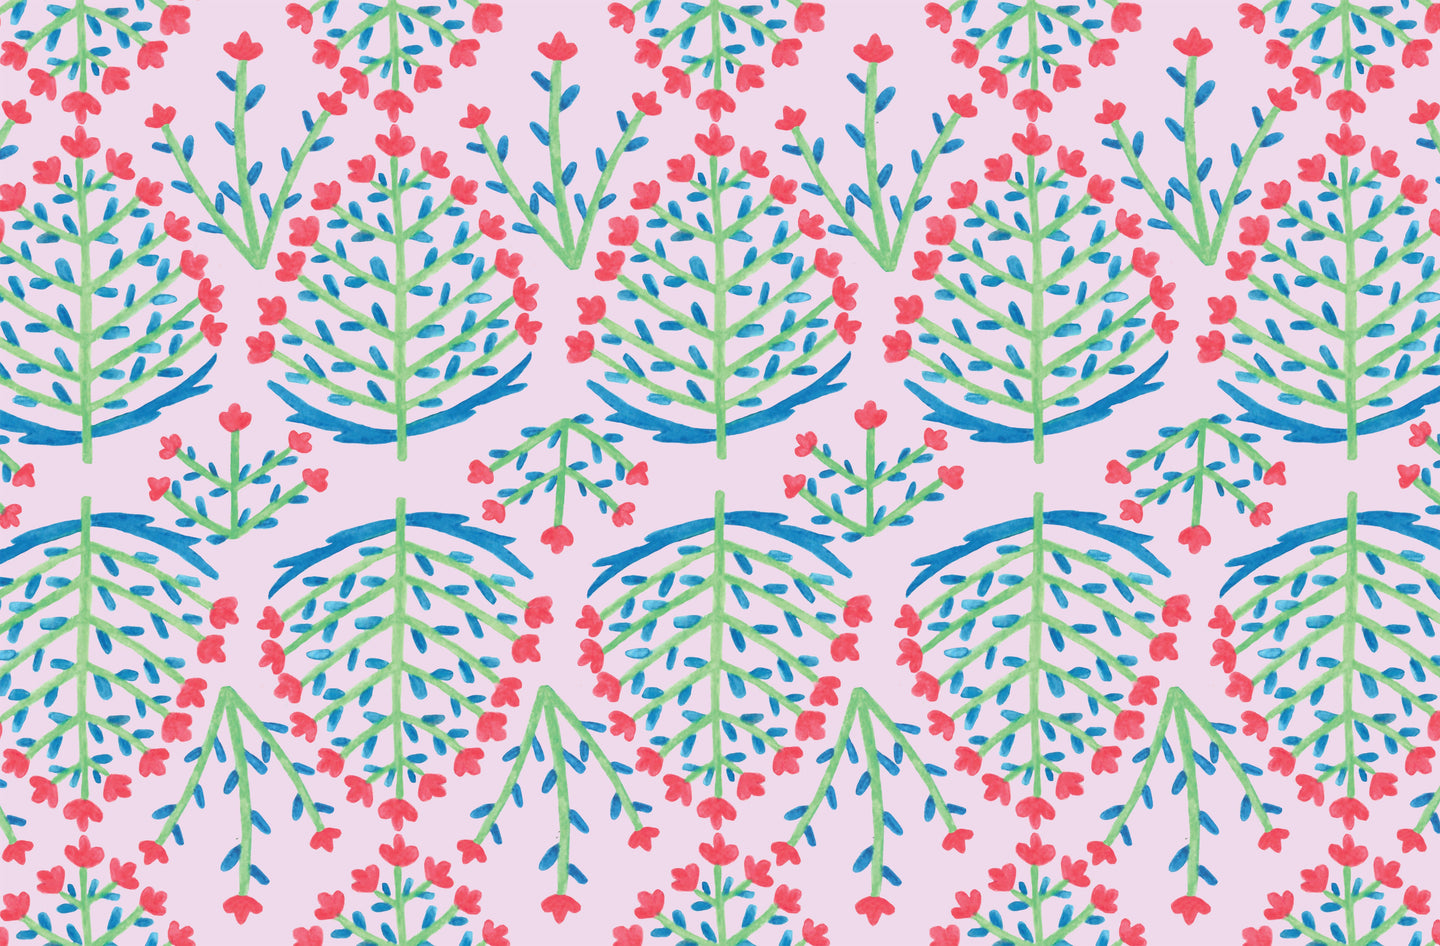 Lucy Grymes Designs - Block Print Paper Placemat Pad